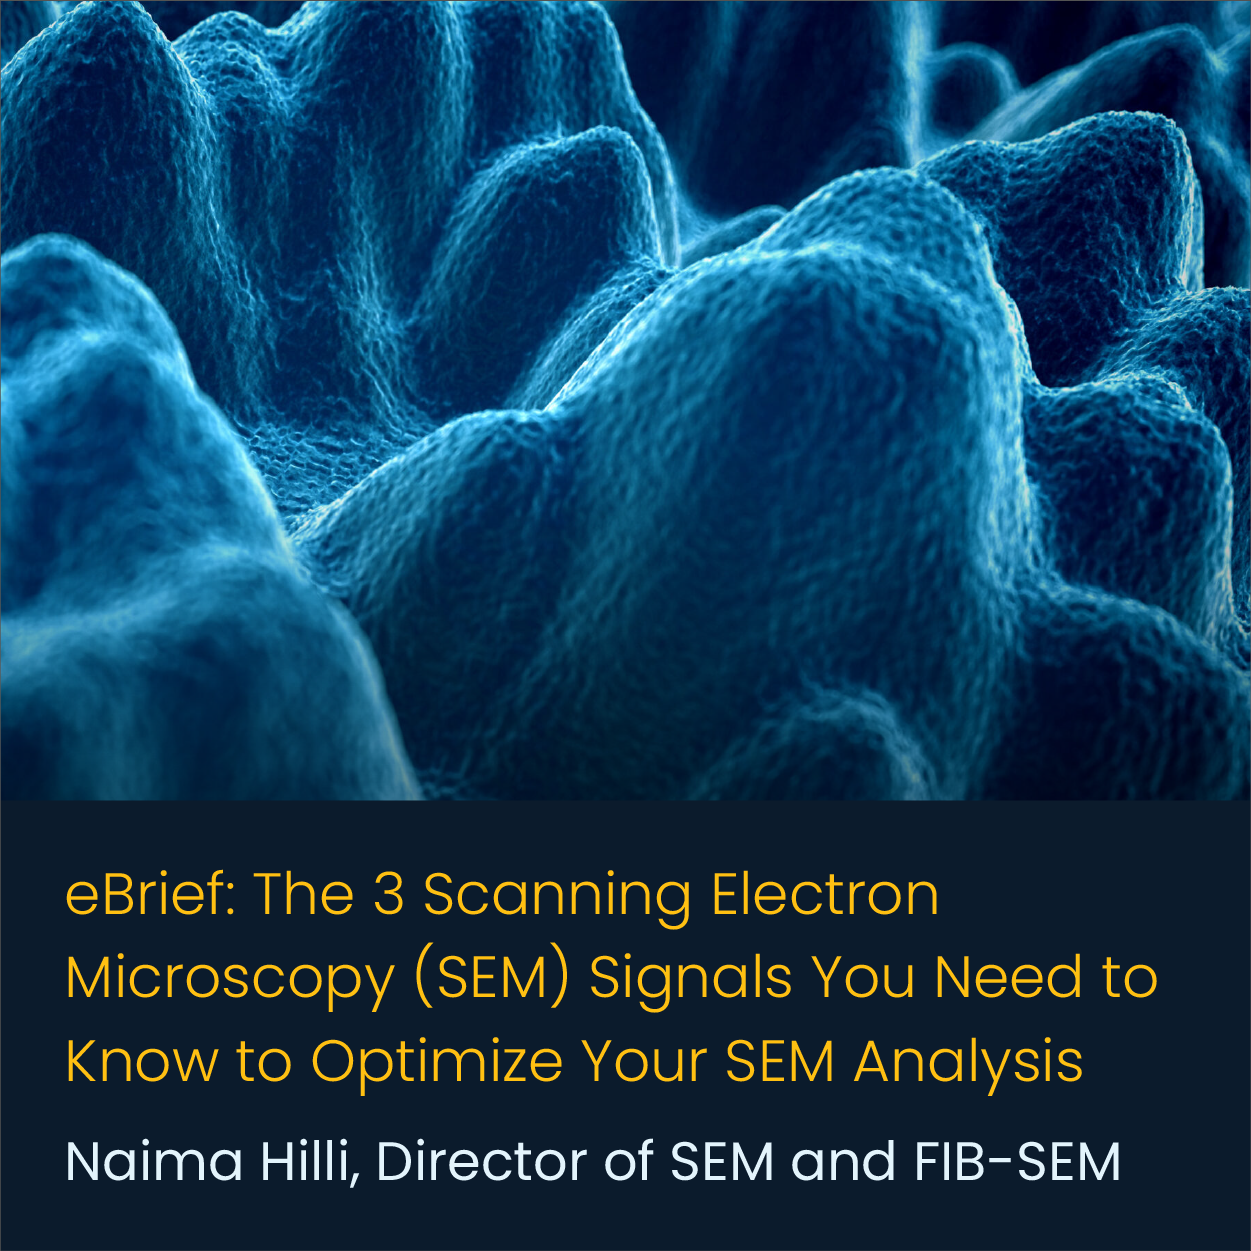 3 Scanning Electron Microscopy (SEM) Signals You Need to Know to Optimize Your SEM Analysis